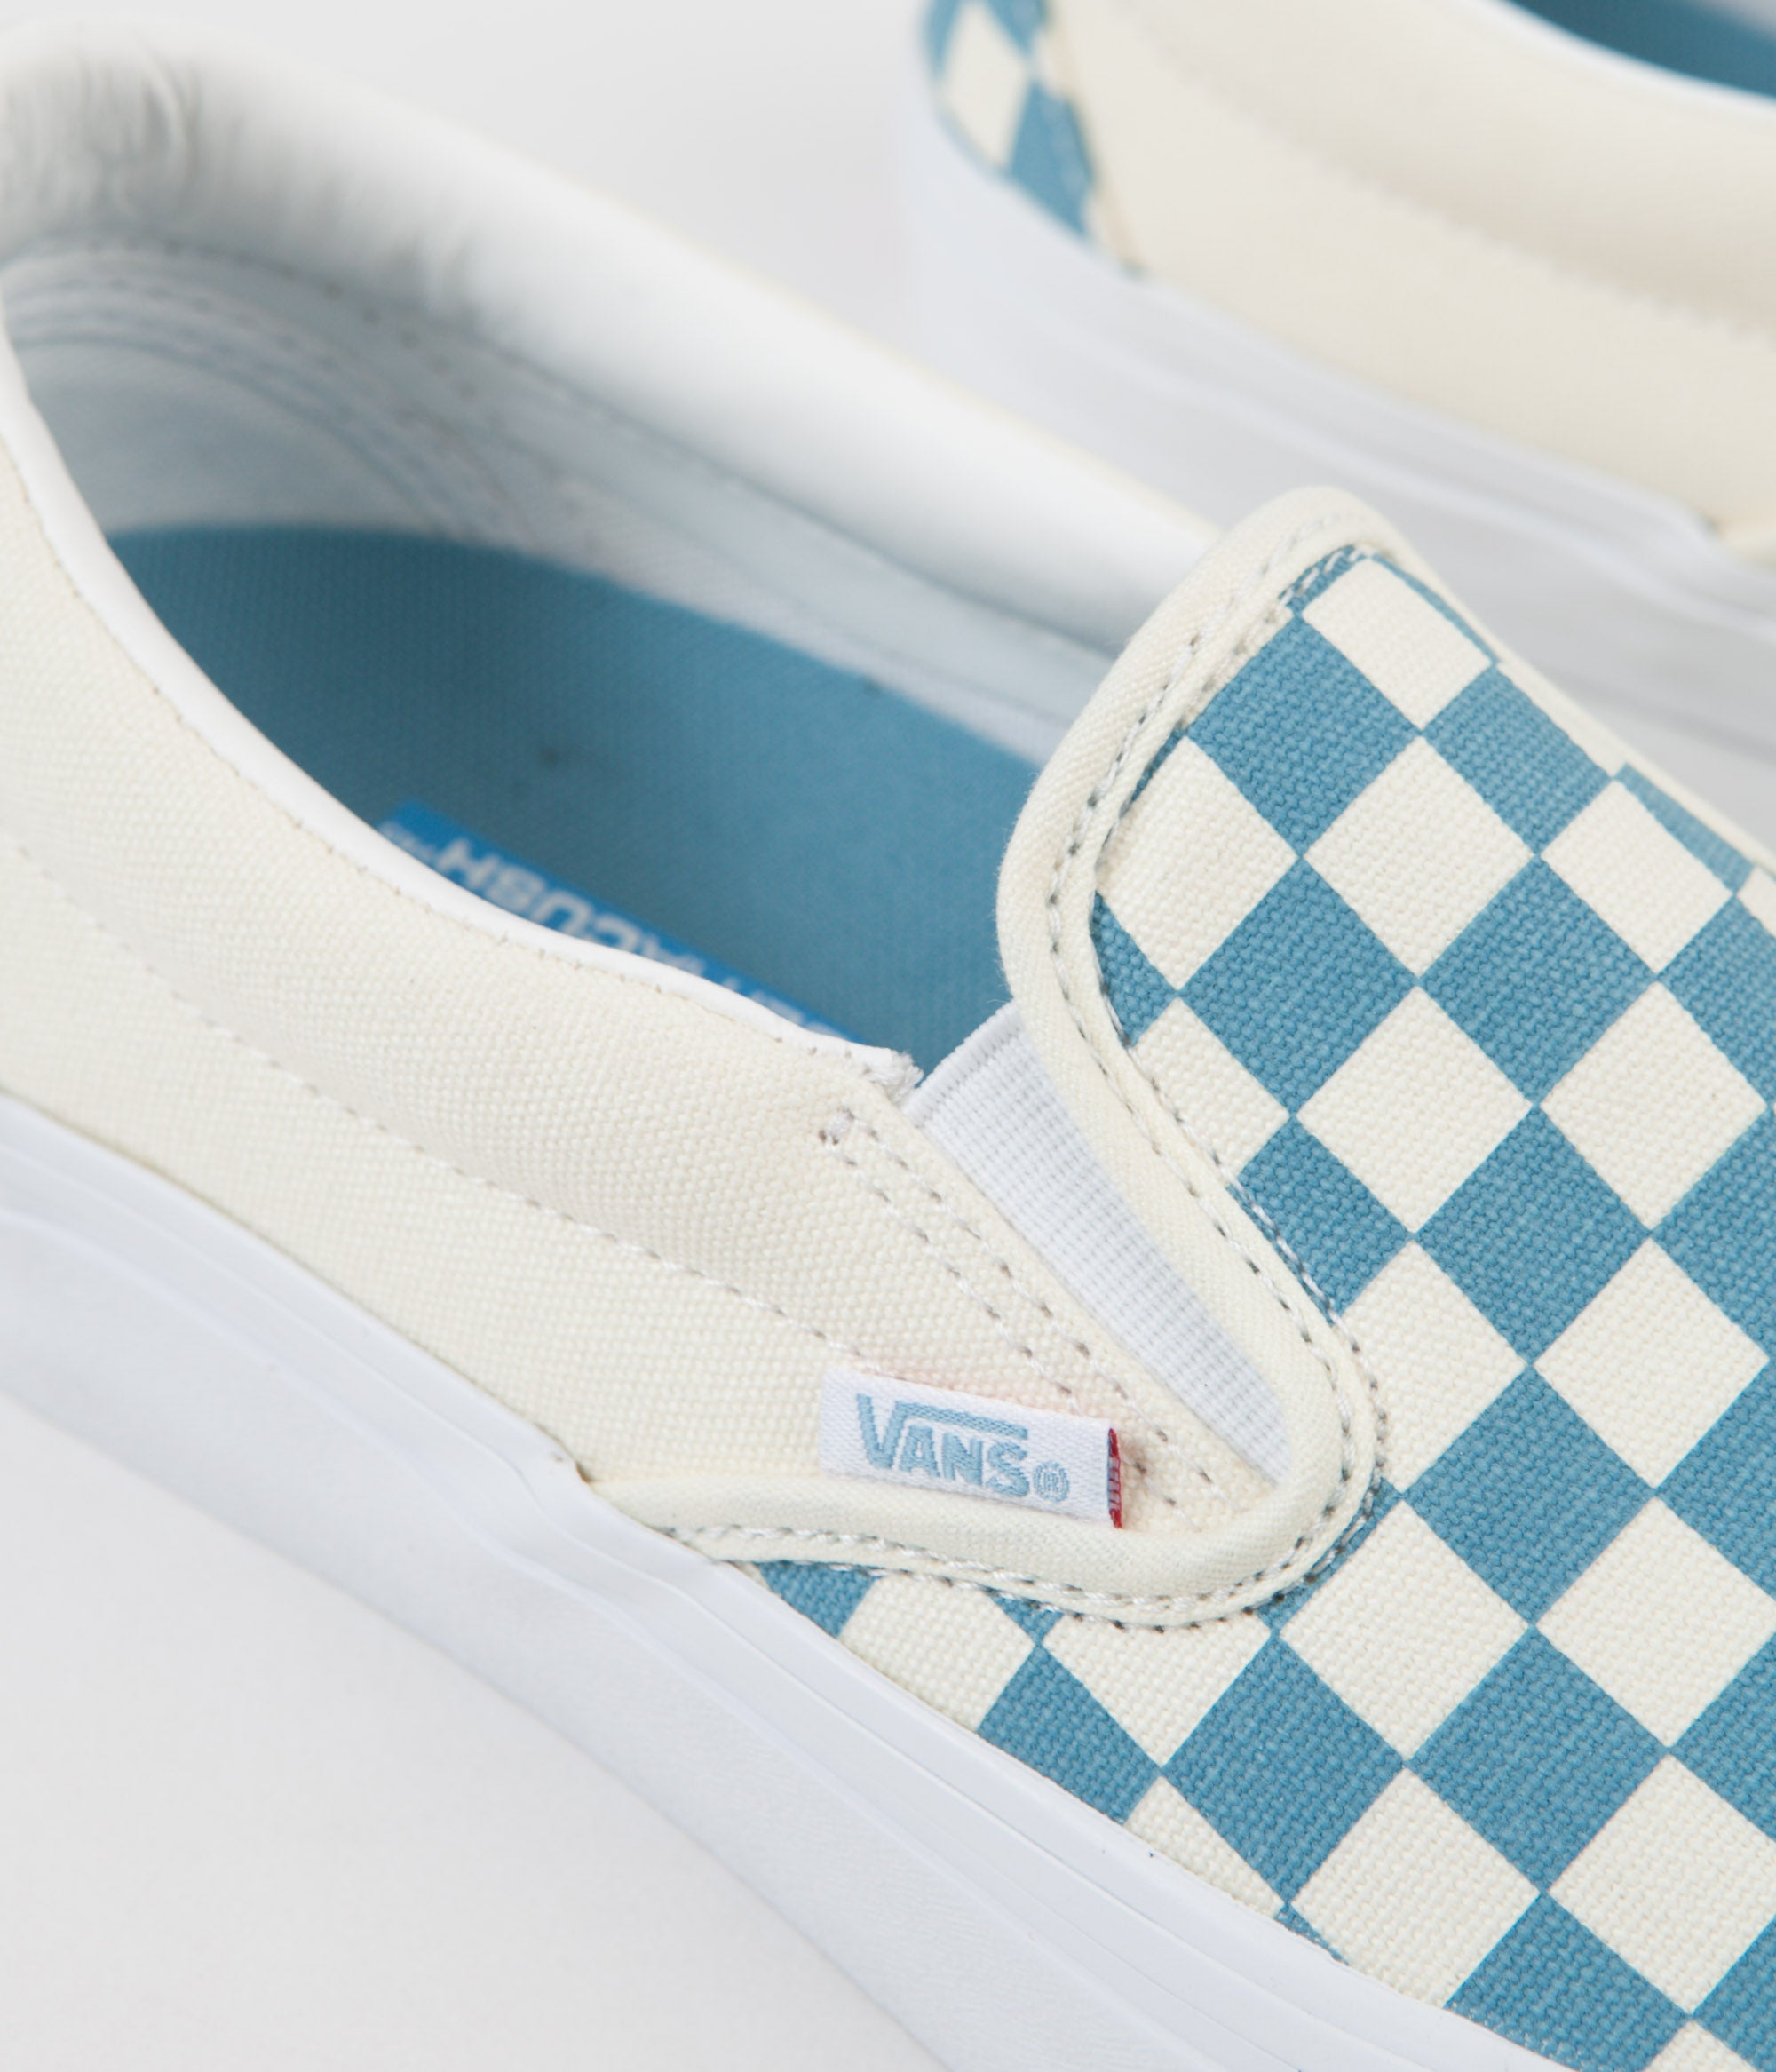 8db641fd406 ... Vans Slip On Pro Checkerboard Shoes - Adriatic Blue   White ...